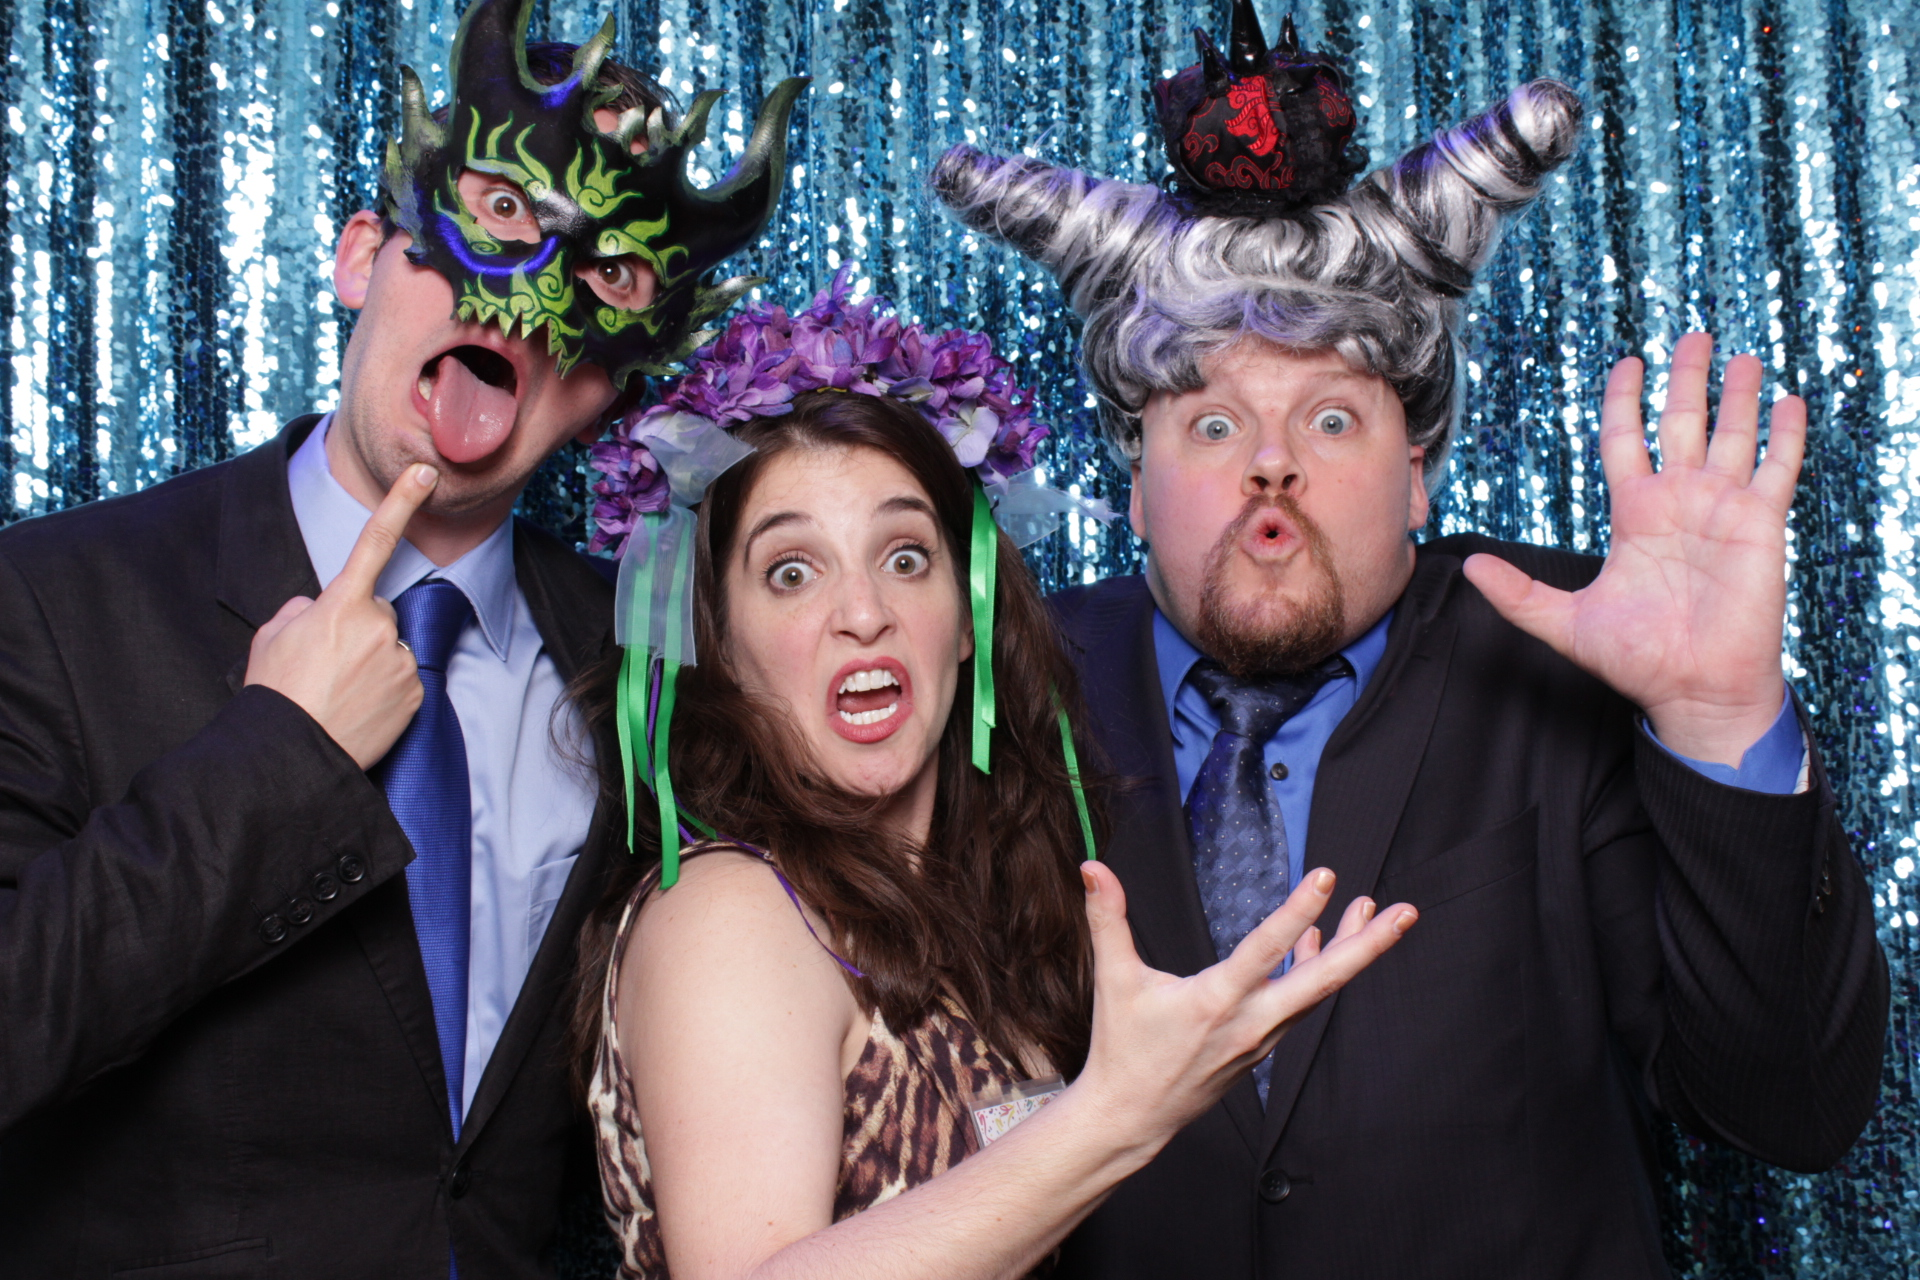 CONSTELLATION THEATRE COMPANY | HOT PINK PHOTO BOOTH